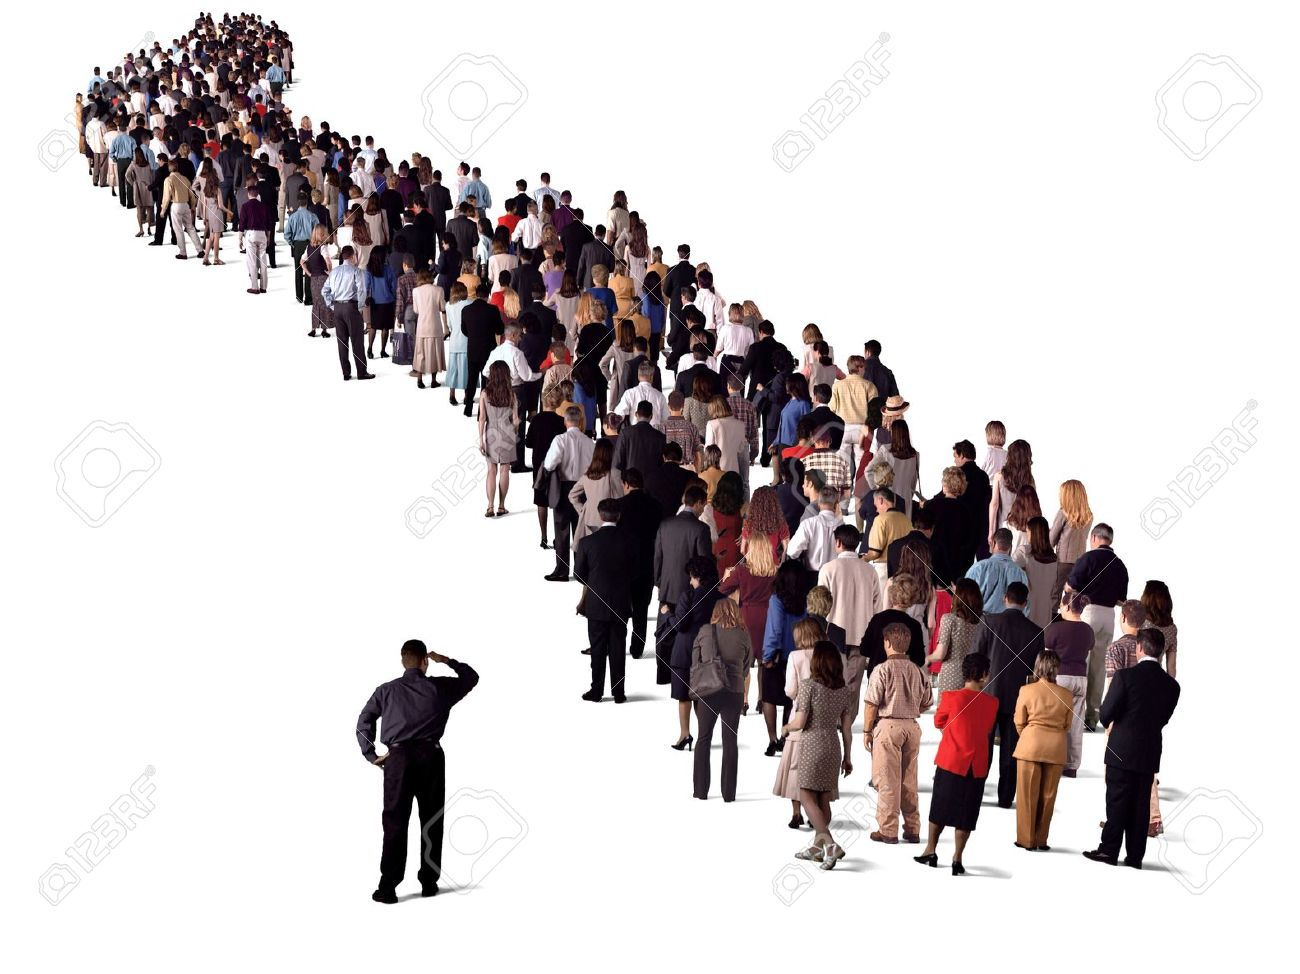 group of people waiting in line, back view Stock Photo - 14931729